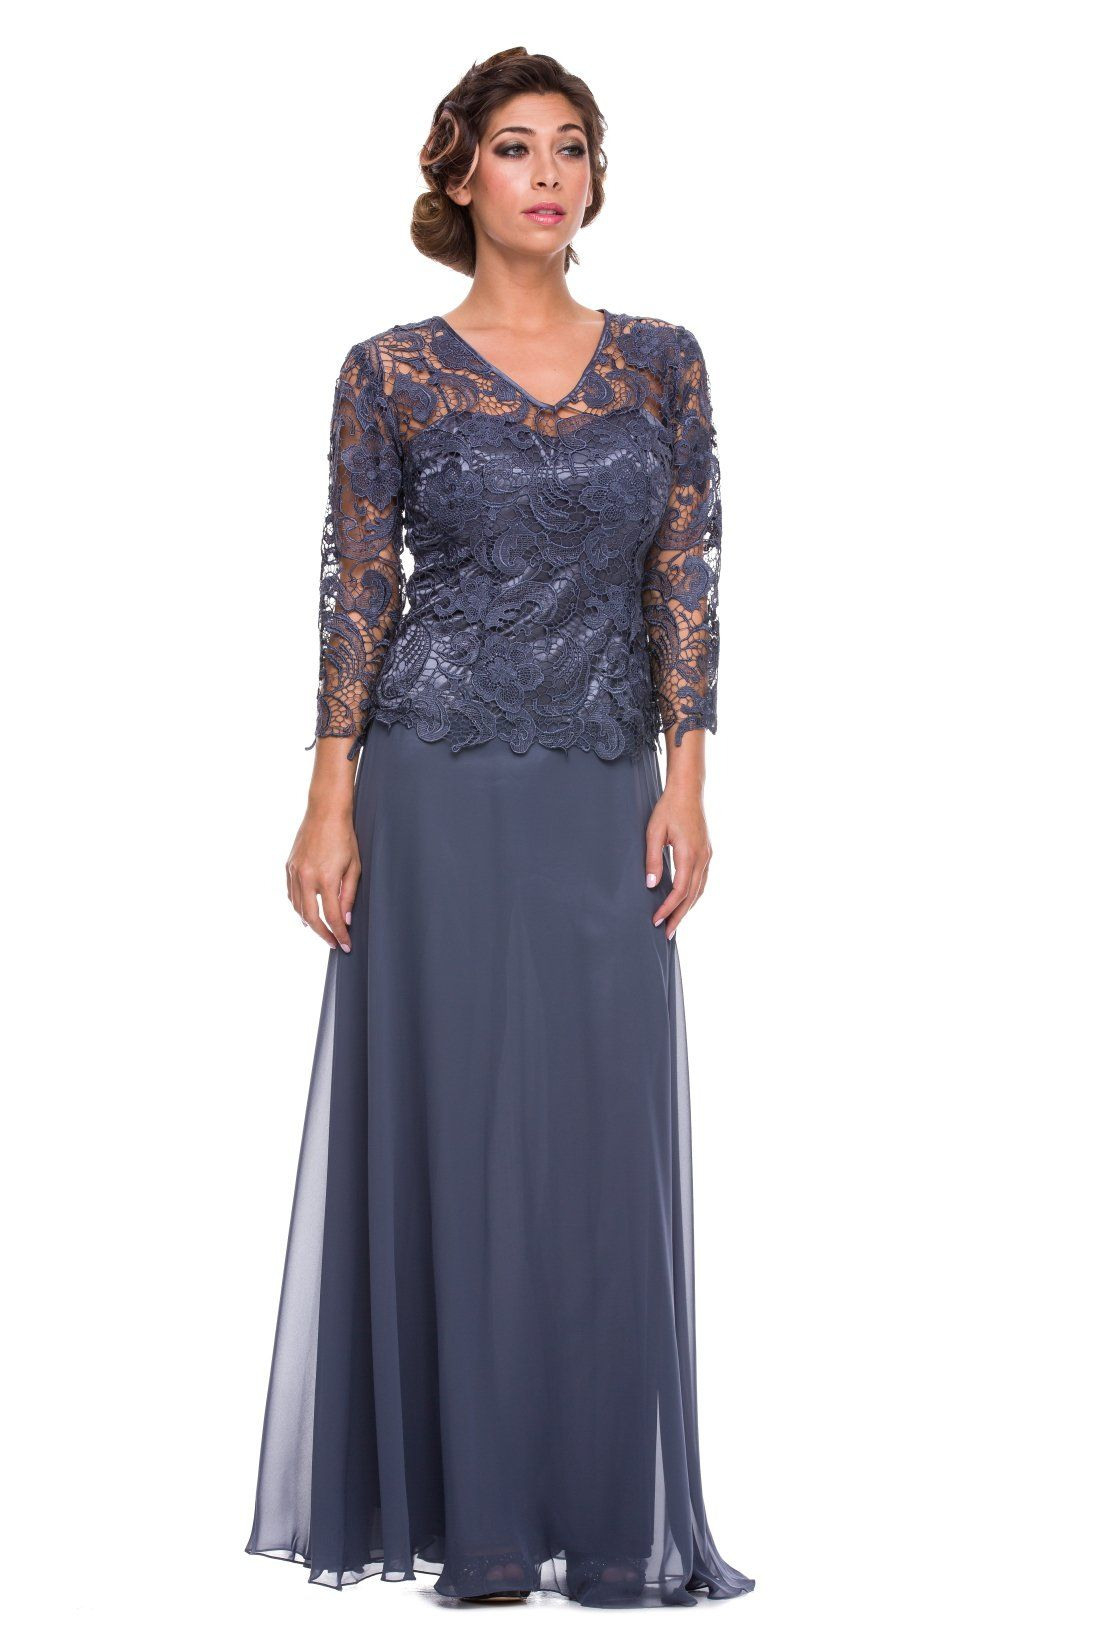 Mother Of The Bride Formal Gown 5040Nx-Steel-Xl | Mutter Der